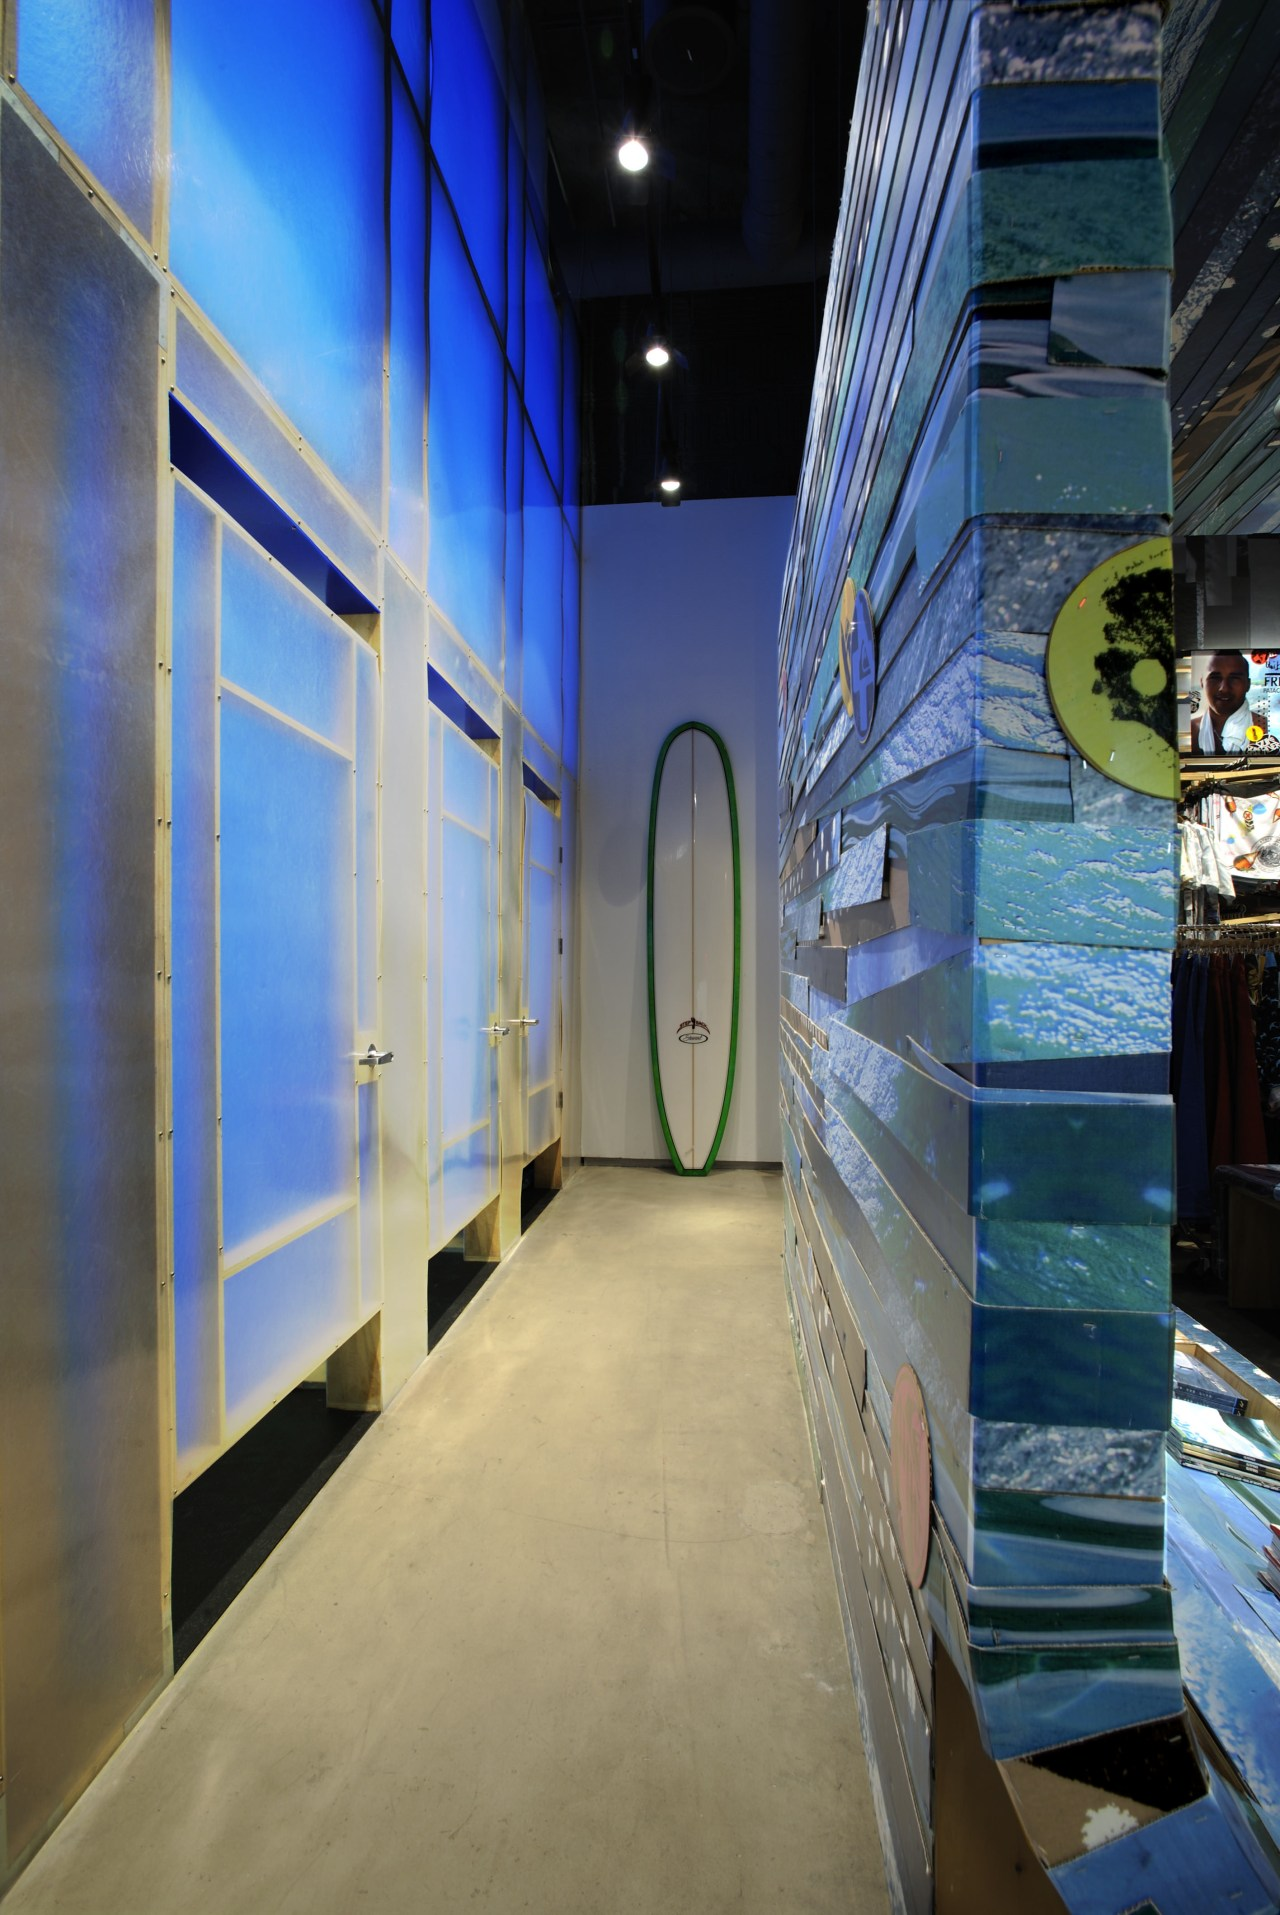 Exterior view of the dressing rooms where fibreglass architecture, blue, glass, interior design, wall